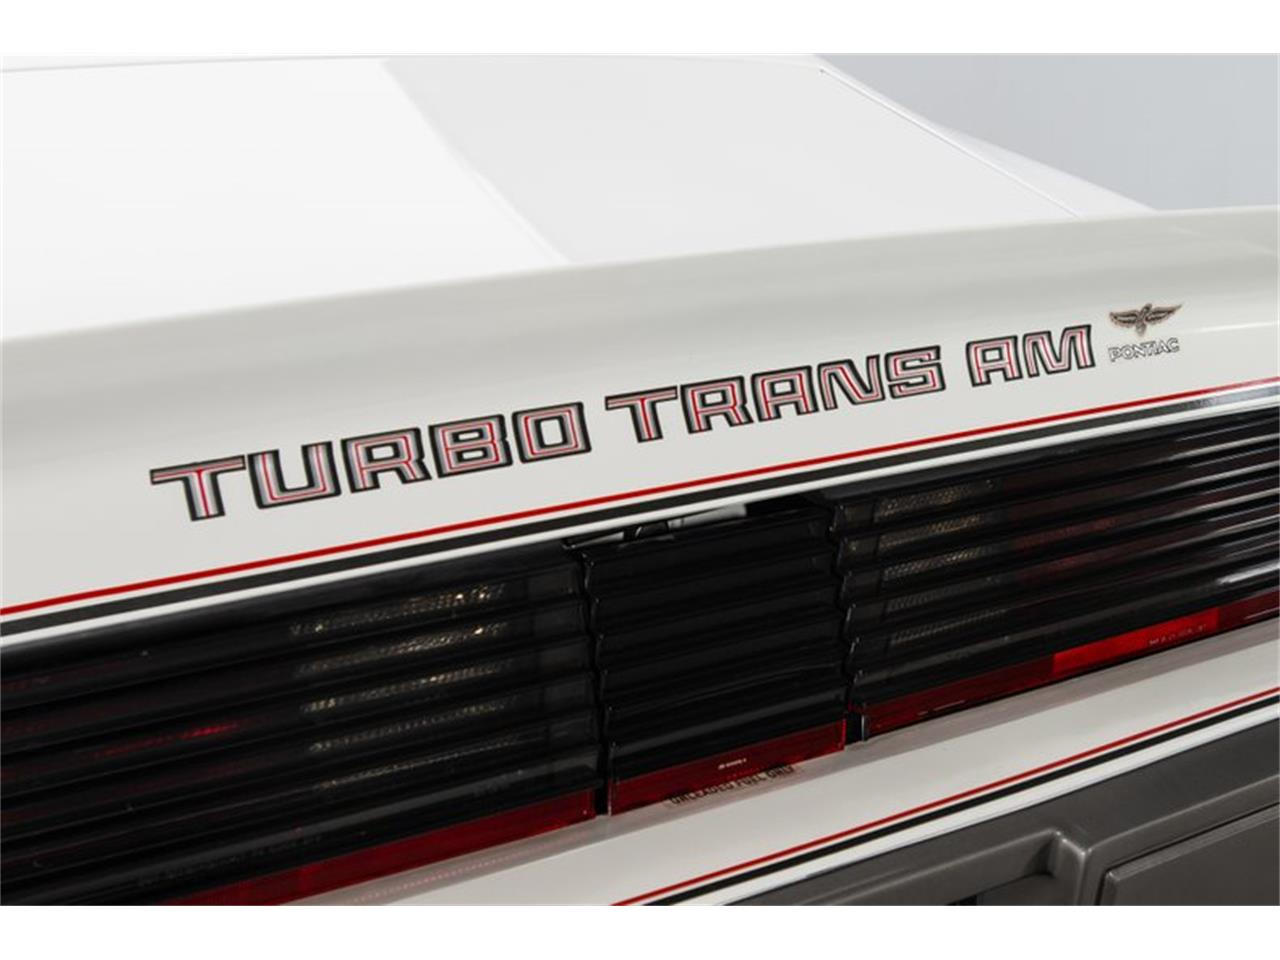 1980 Pontiac Firebird Trans Am Turbo Indy Pace Car Edition for sale in Charlotte, NC – photo 23